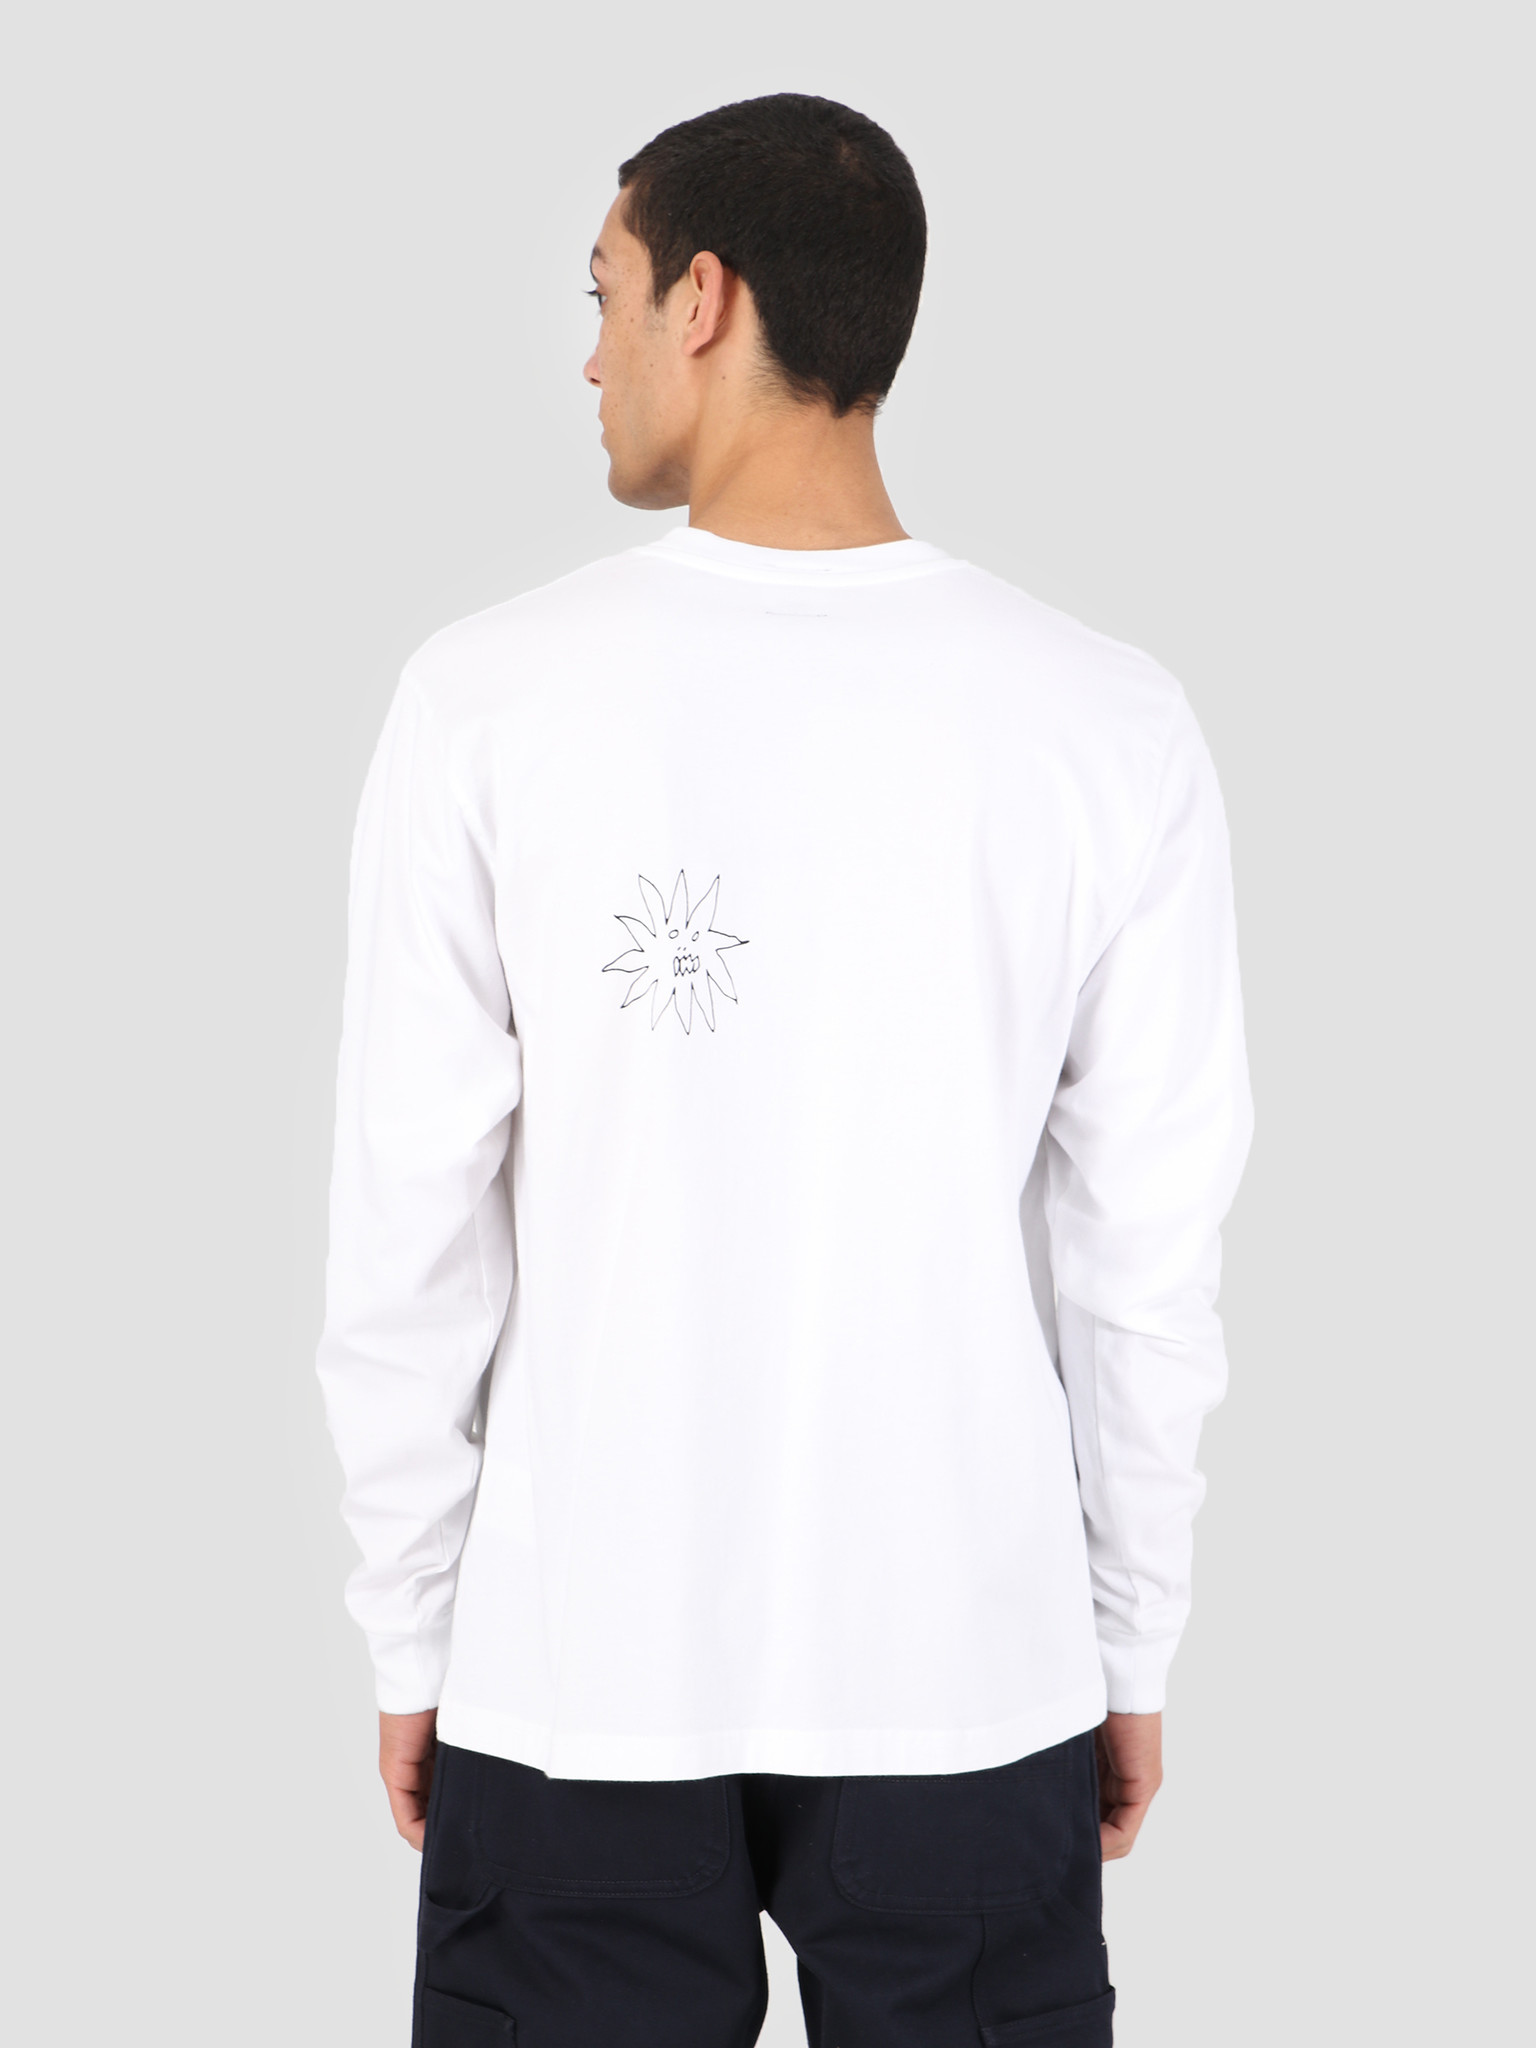 Heresy Heresy Dawn T-Shirt White HSS19-T06W